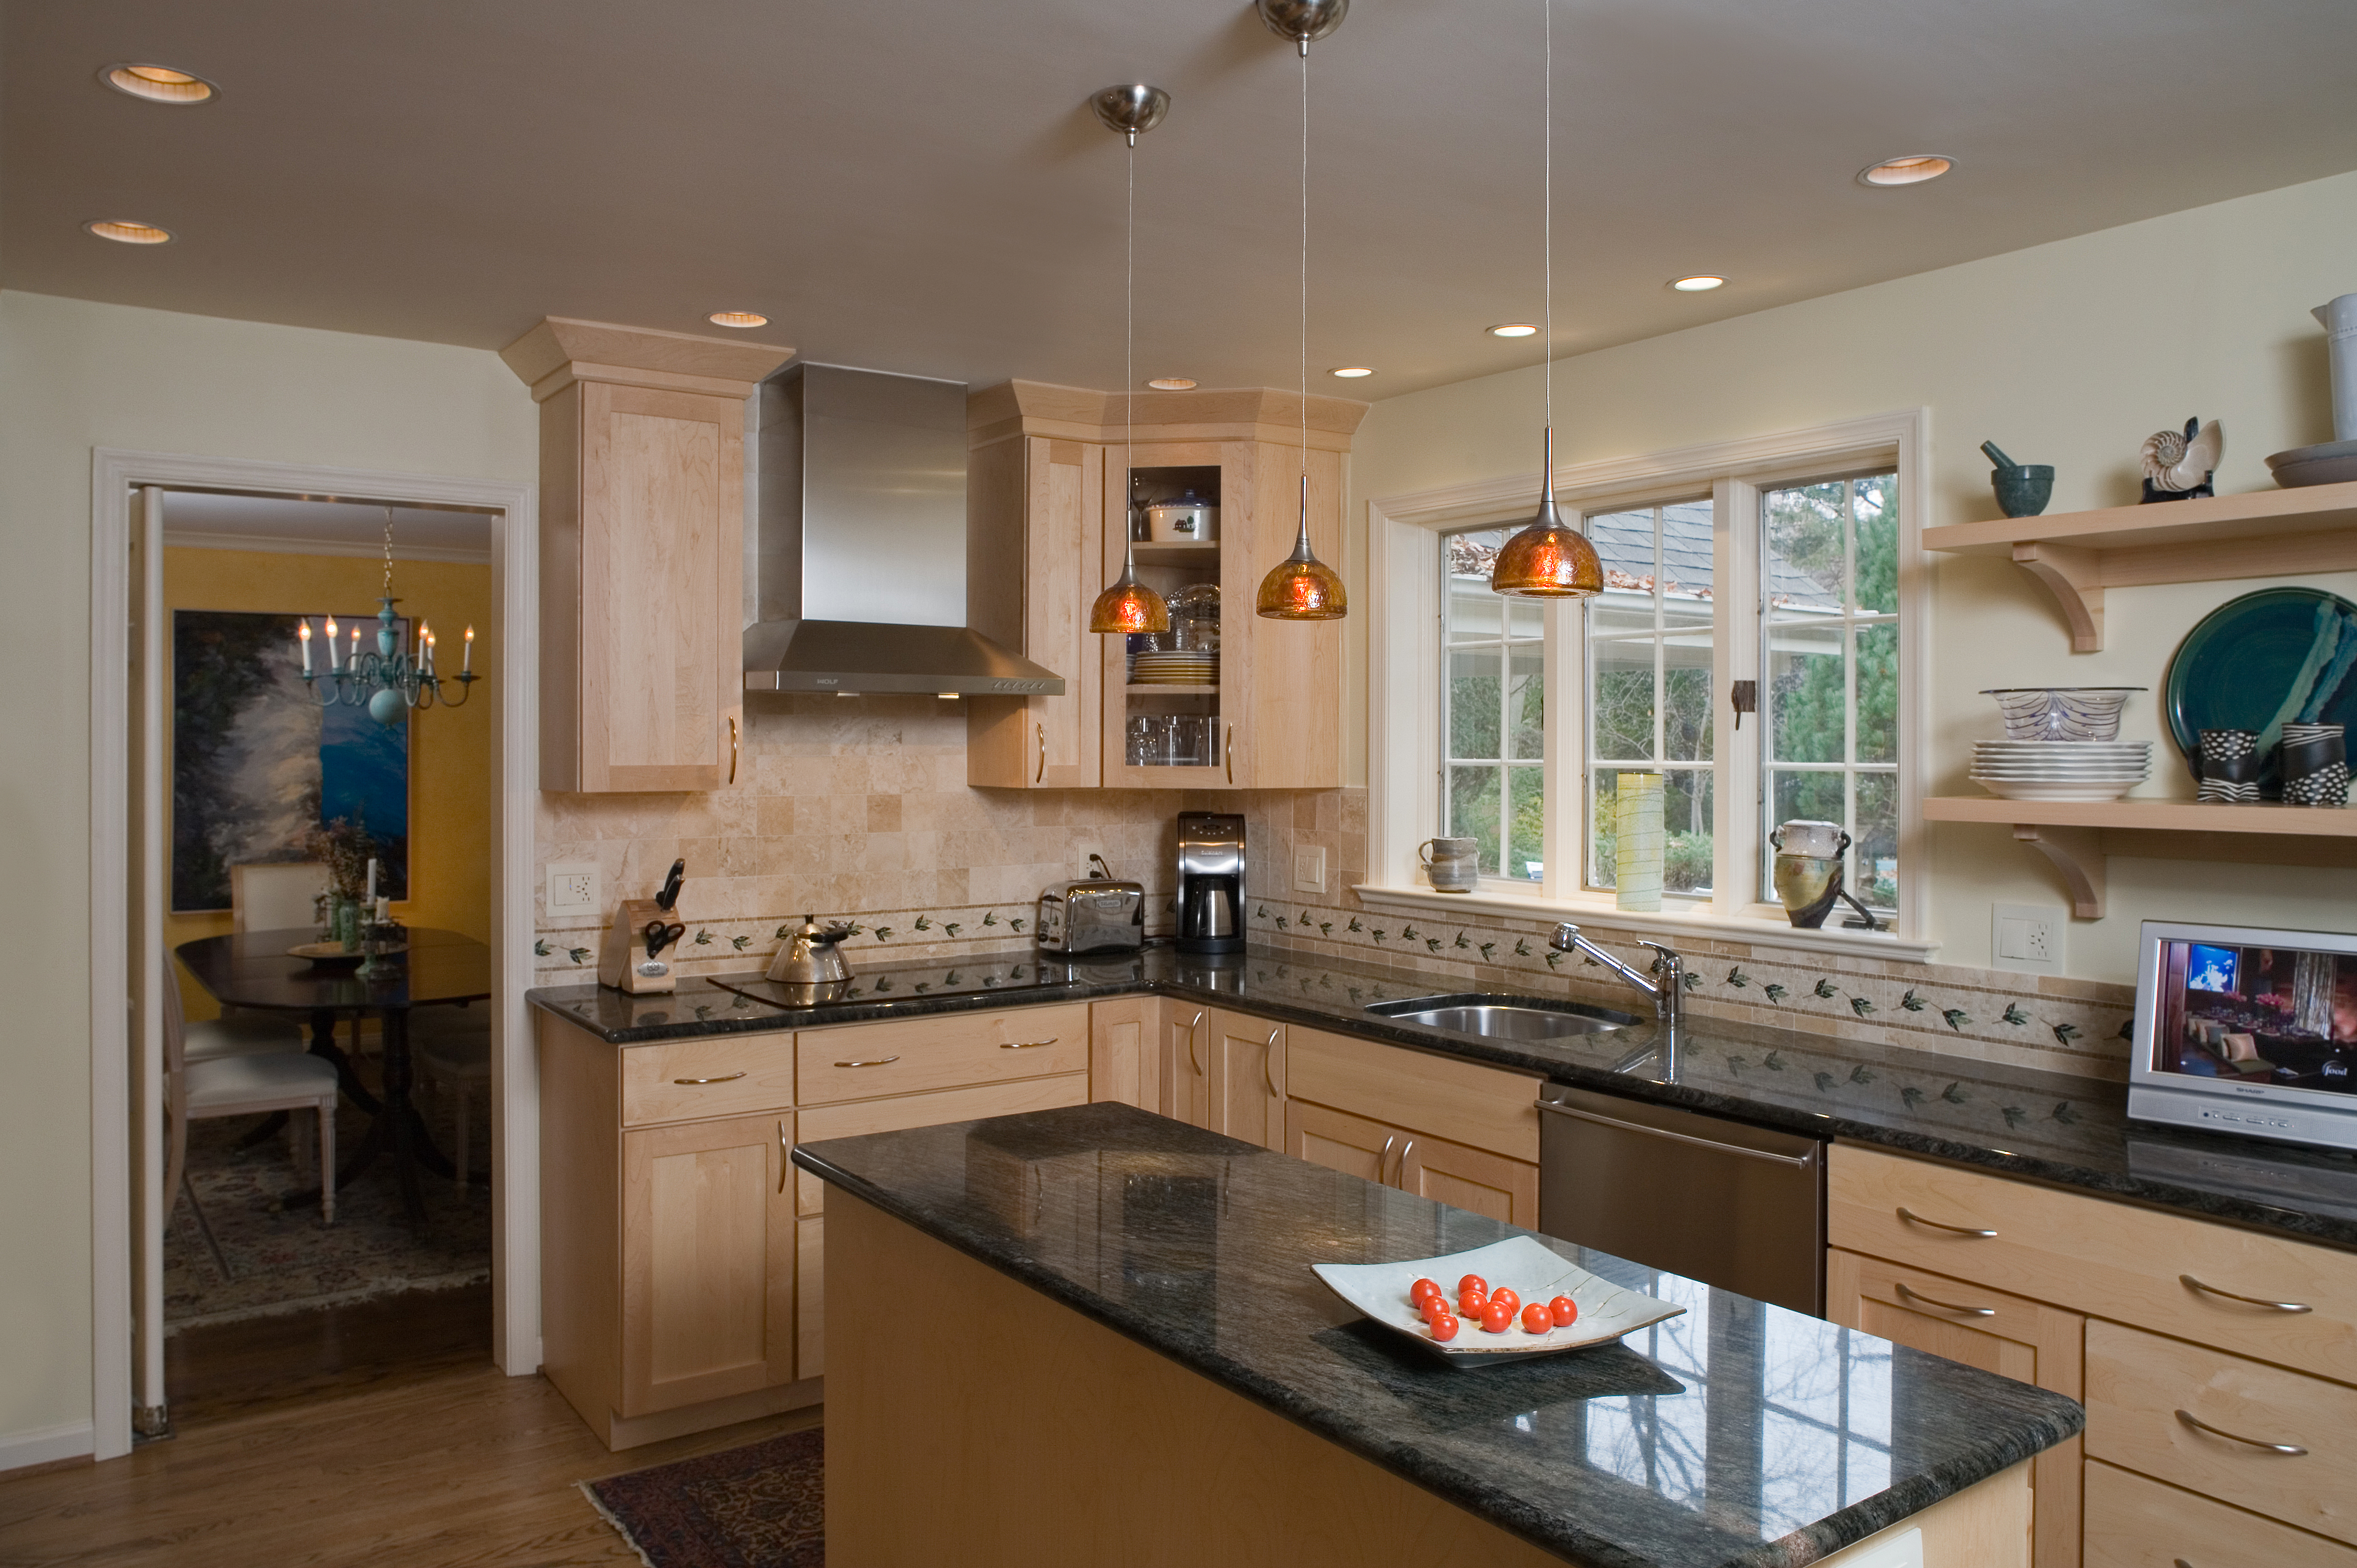 Rydal, PA Kitchen Remodel With Warm Colors and Style